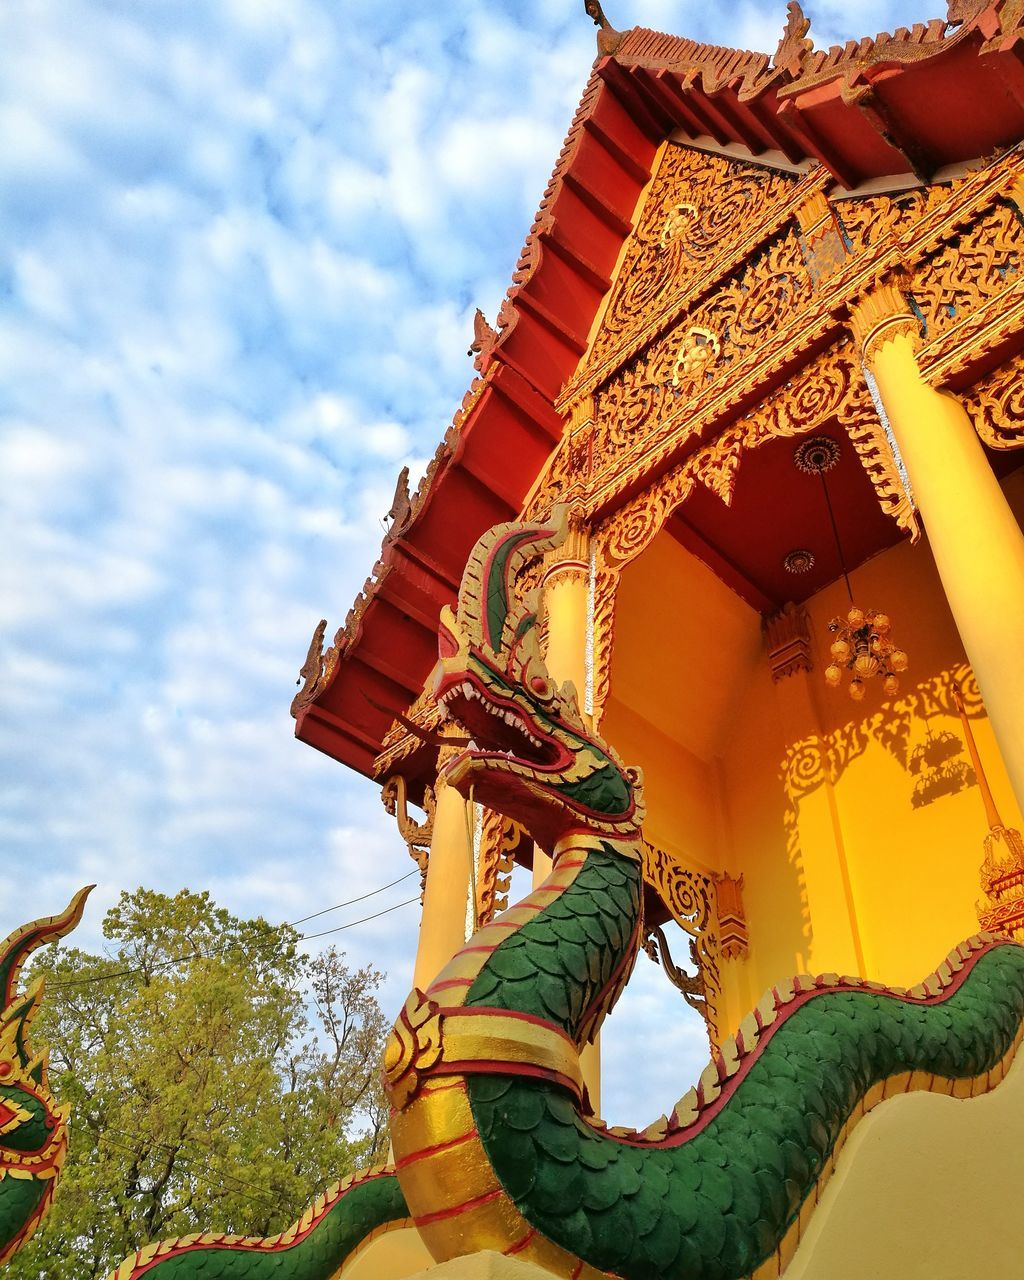 low angle view, religion, spirituality, place of worship, cultures, sky, day, outdoors, statue, dragon, multi colored, architecture, no people, tree, chinese dragon